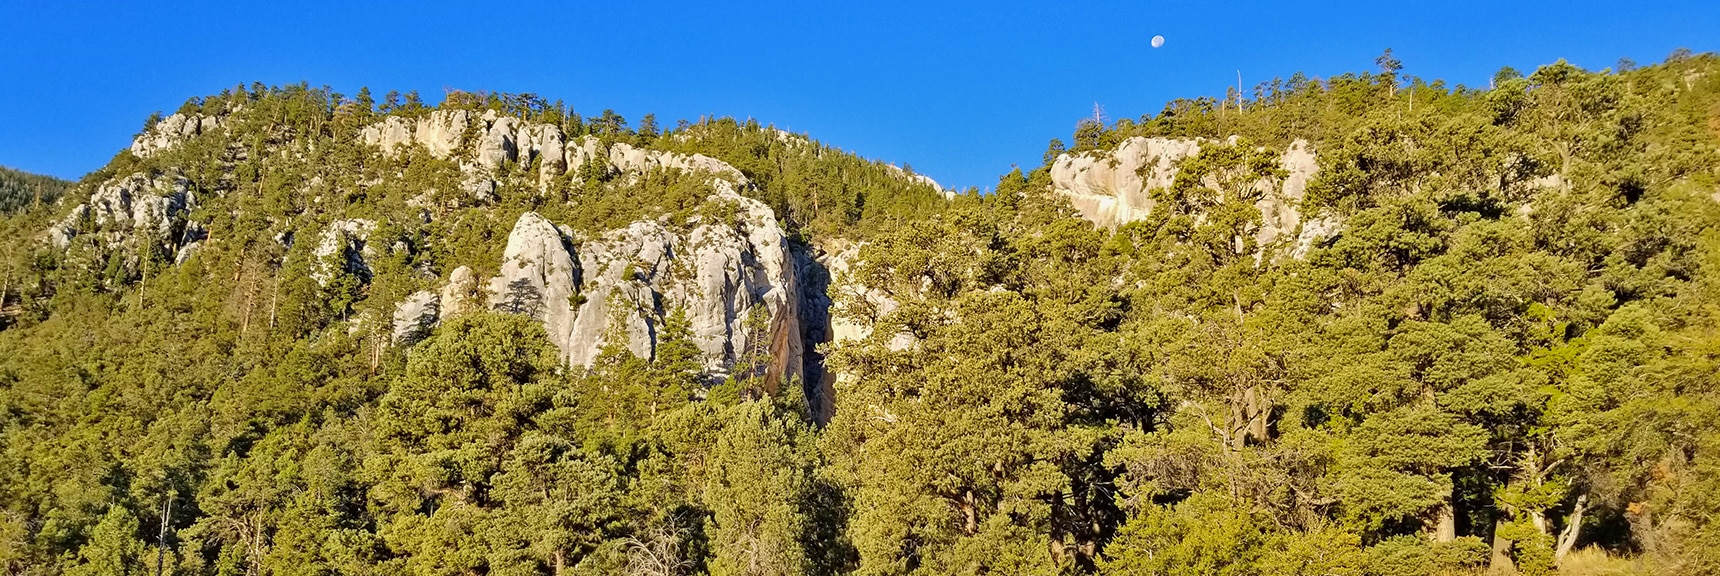 View from the Trailhead at Moonset | Robbers Roost and Beyond | Spring Mountains, Nevada